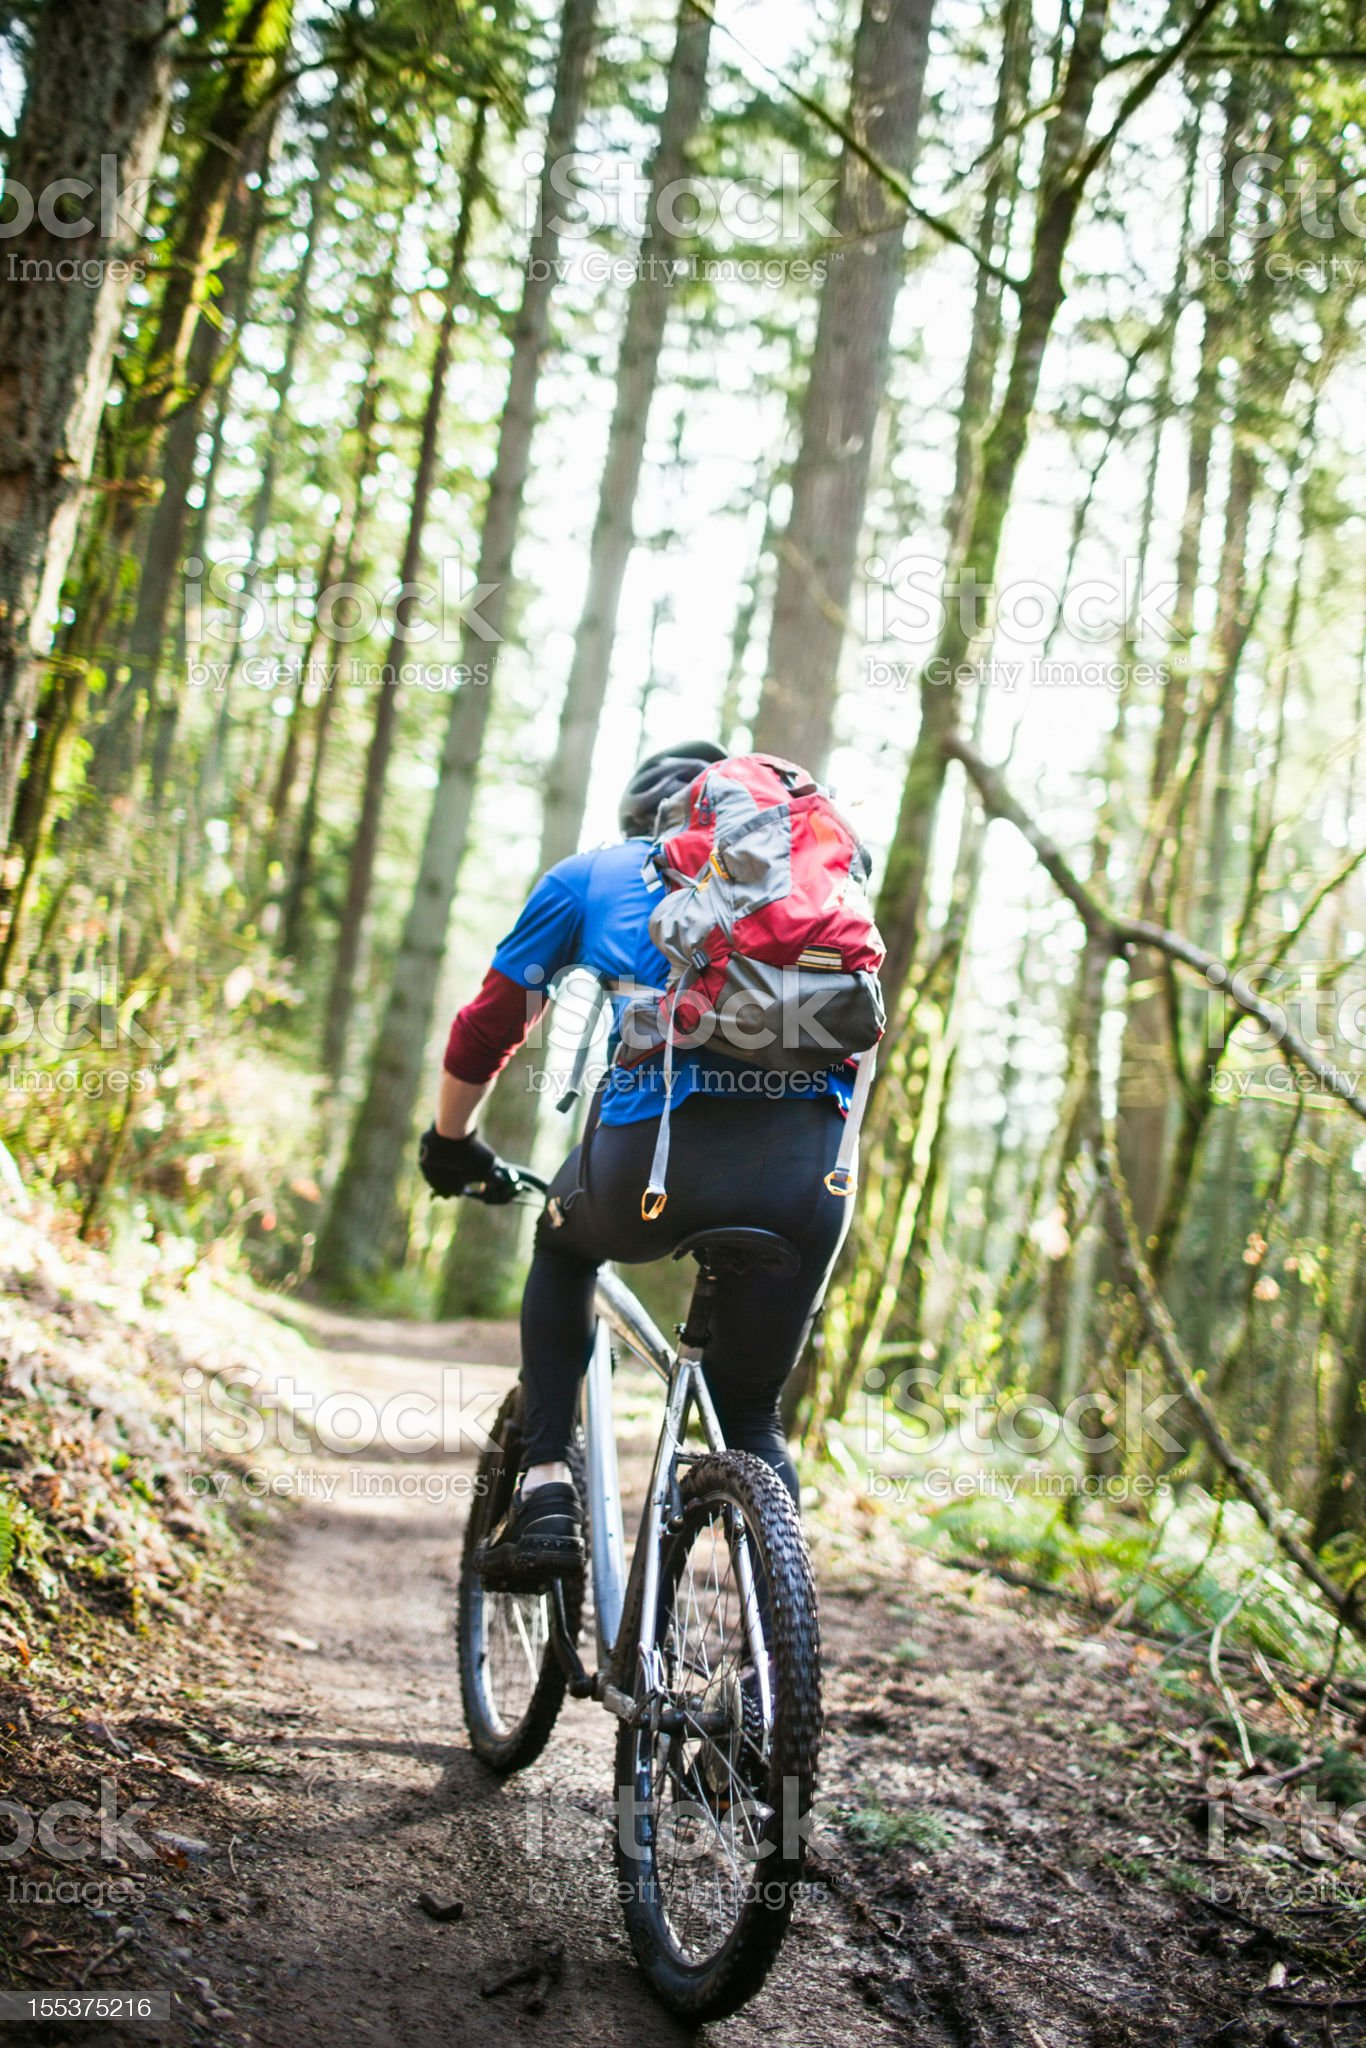 Mountain Bike Ride on Forest Trail royalty-free stock photo